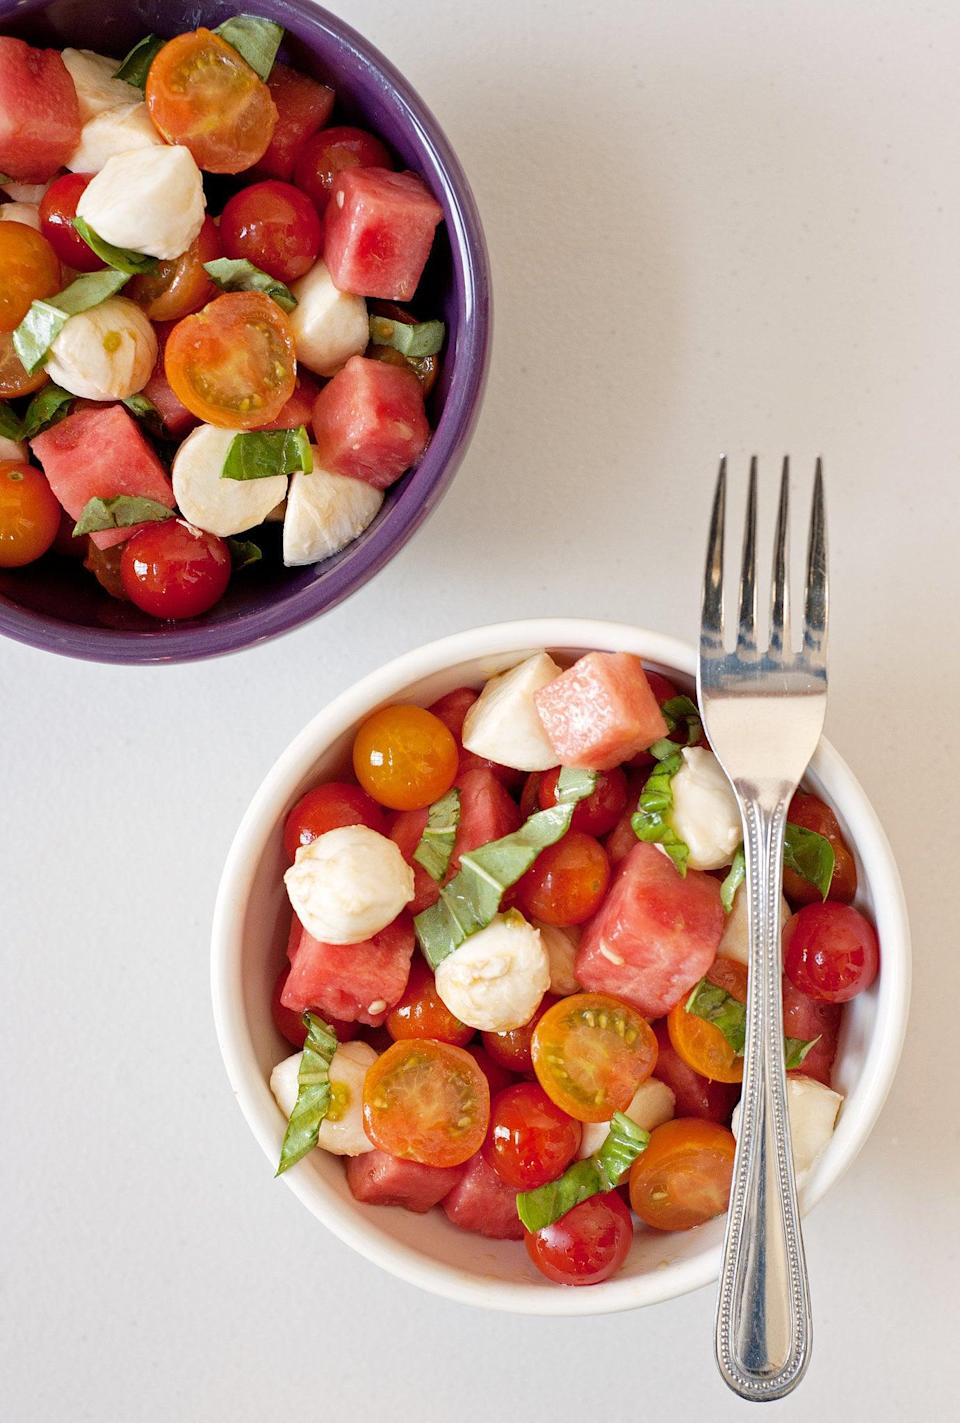 "<p><strong>Get the recipe:</strong> <a href=""https://www.popsugar.com/food/Watermelon-Caprese-Salad-30950320"" class=""link rapid-noclick-resp"" rel=""nofollow noopener"" target=""_blank"" data-ylk=""slk:watermelon caprese salad"">watermelon caprese salad</a></p>"